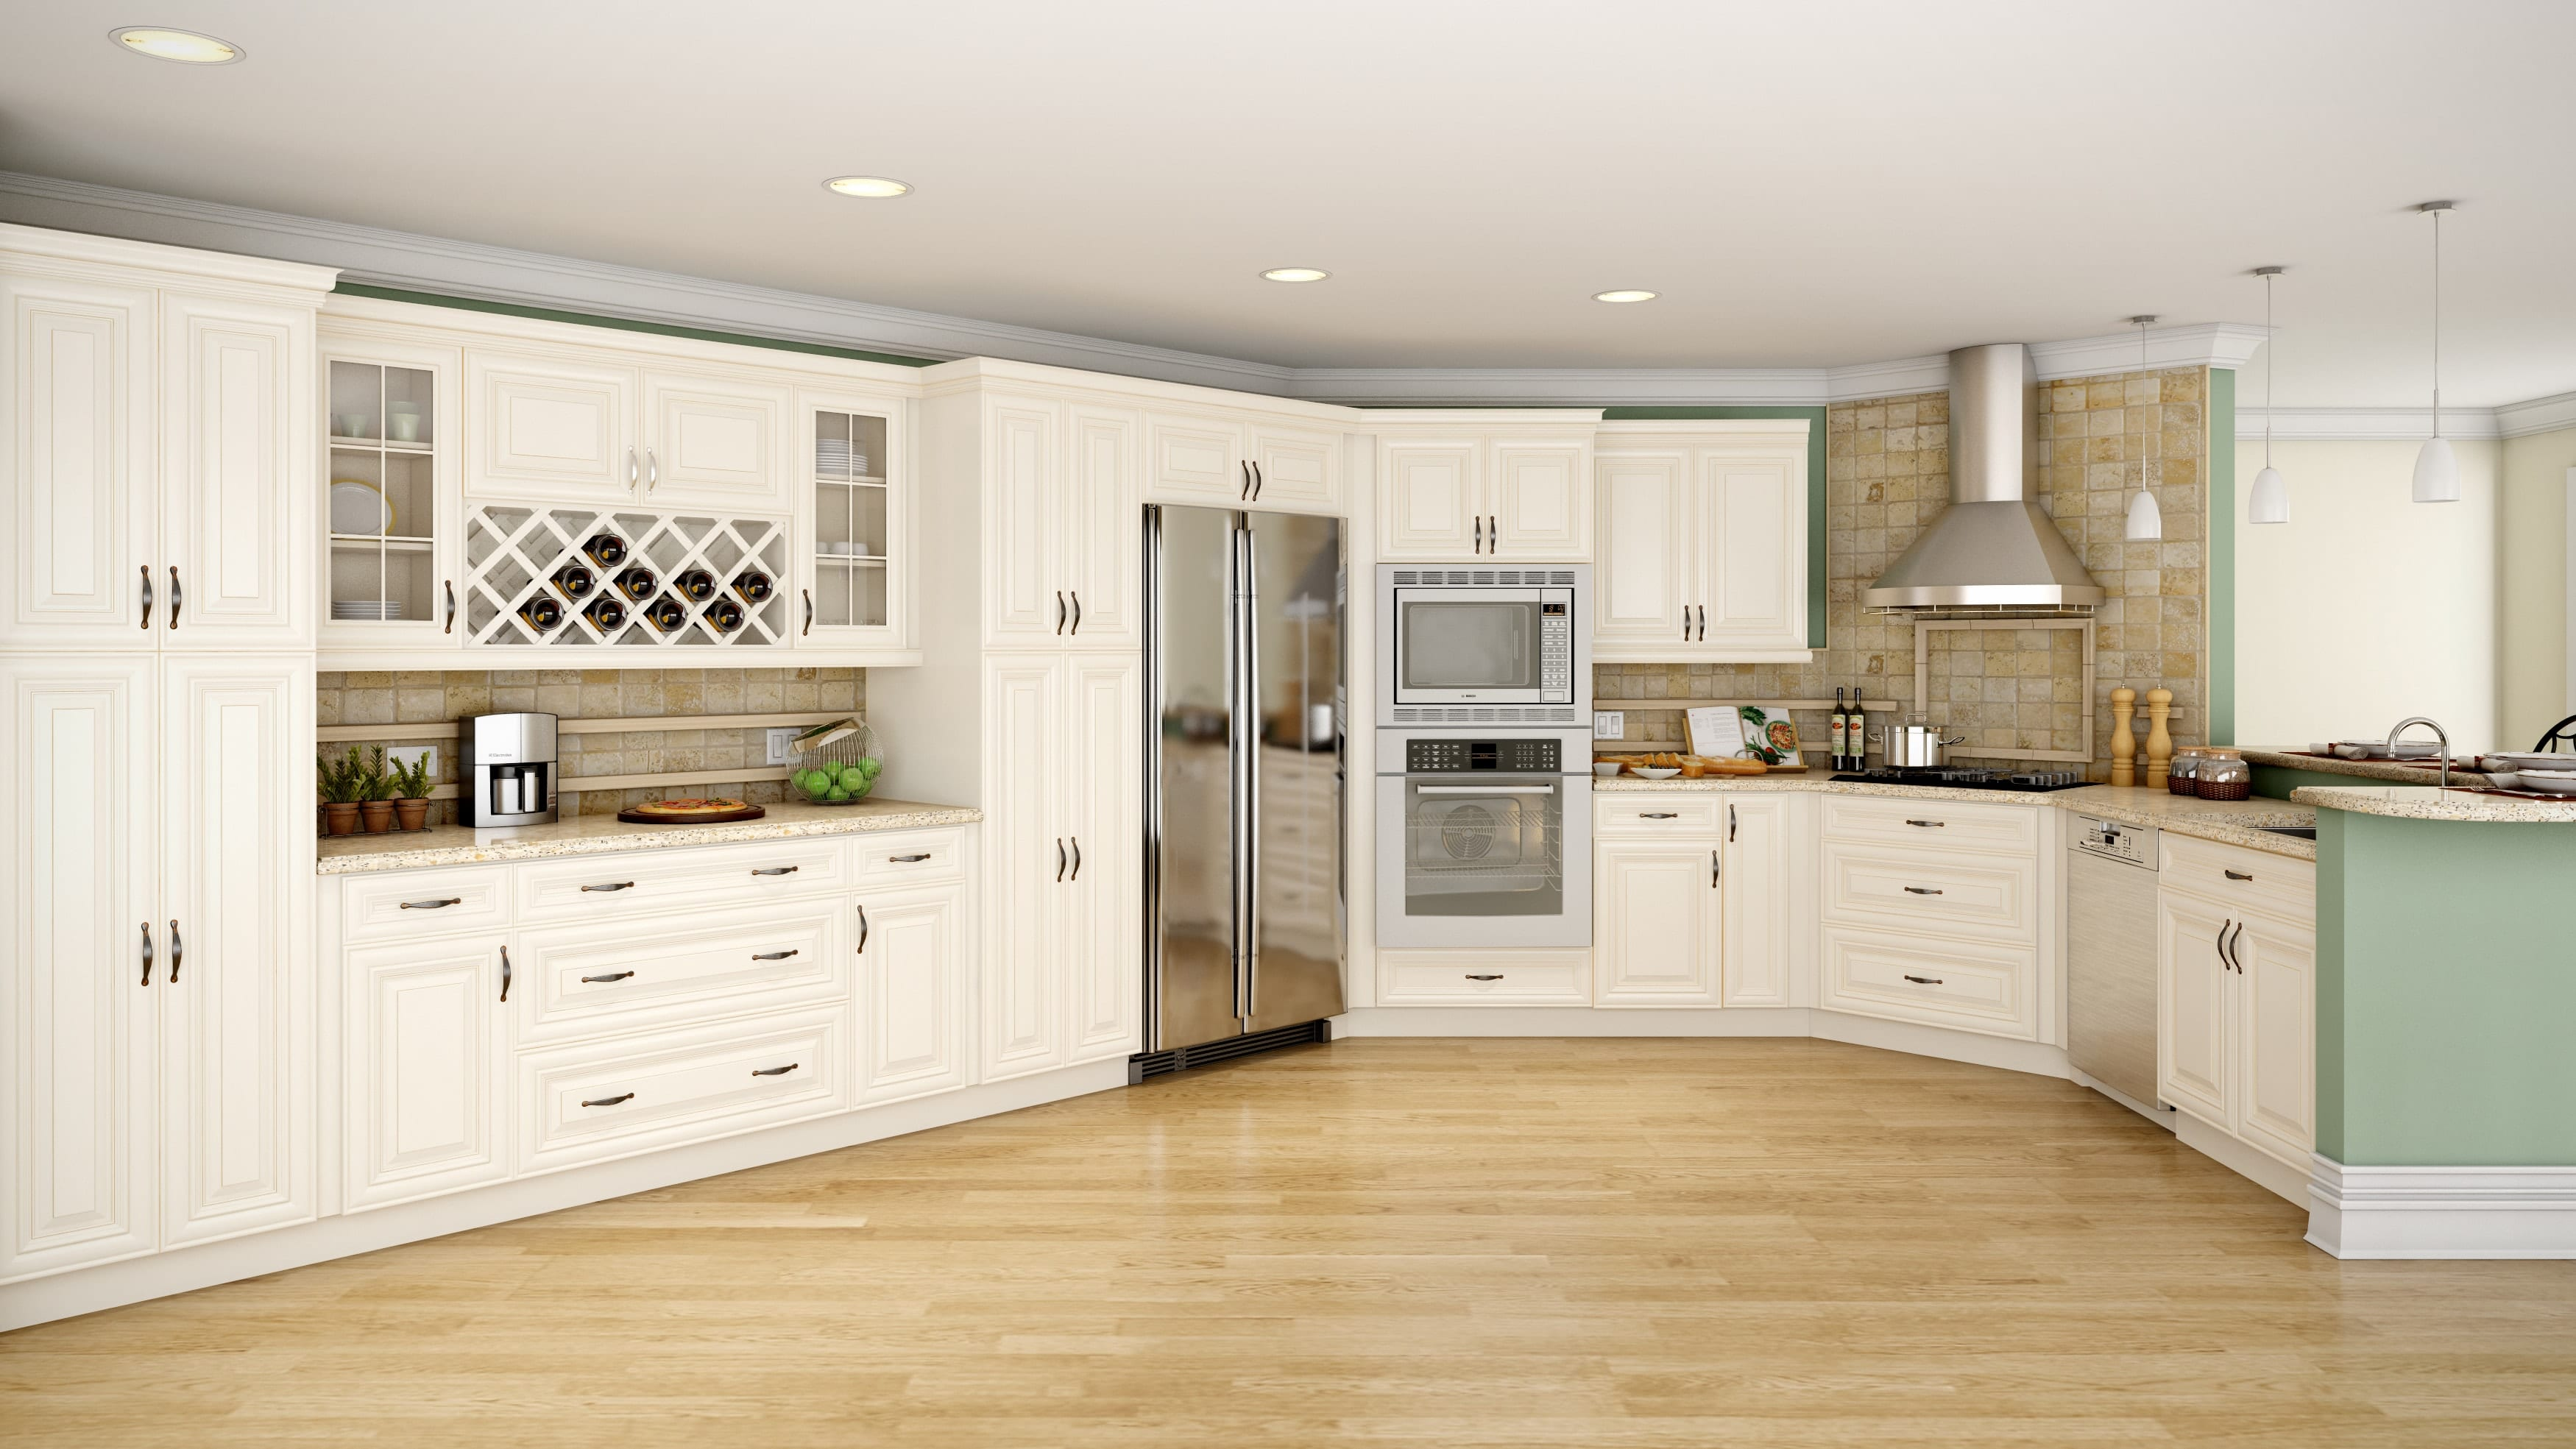 cabinets with jamaicakitchen cabinet islands cupboard kitchen jamaica mandeville in kingston